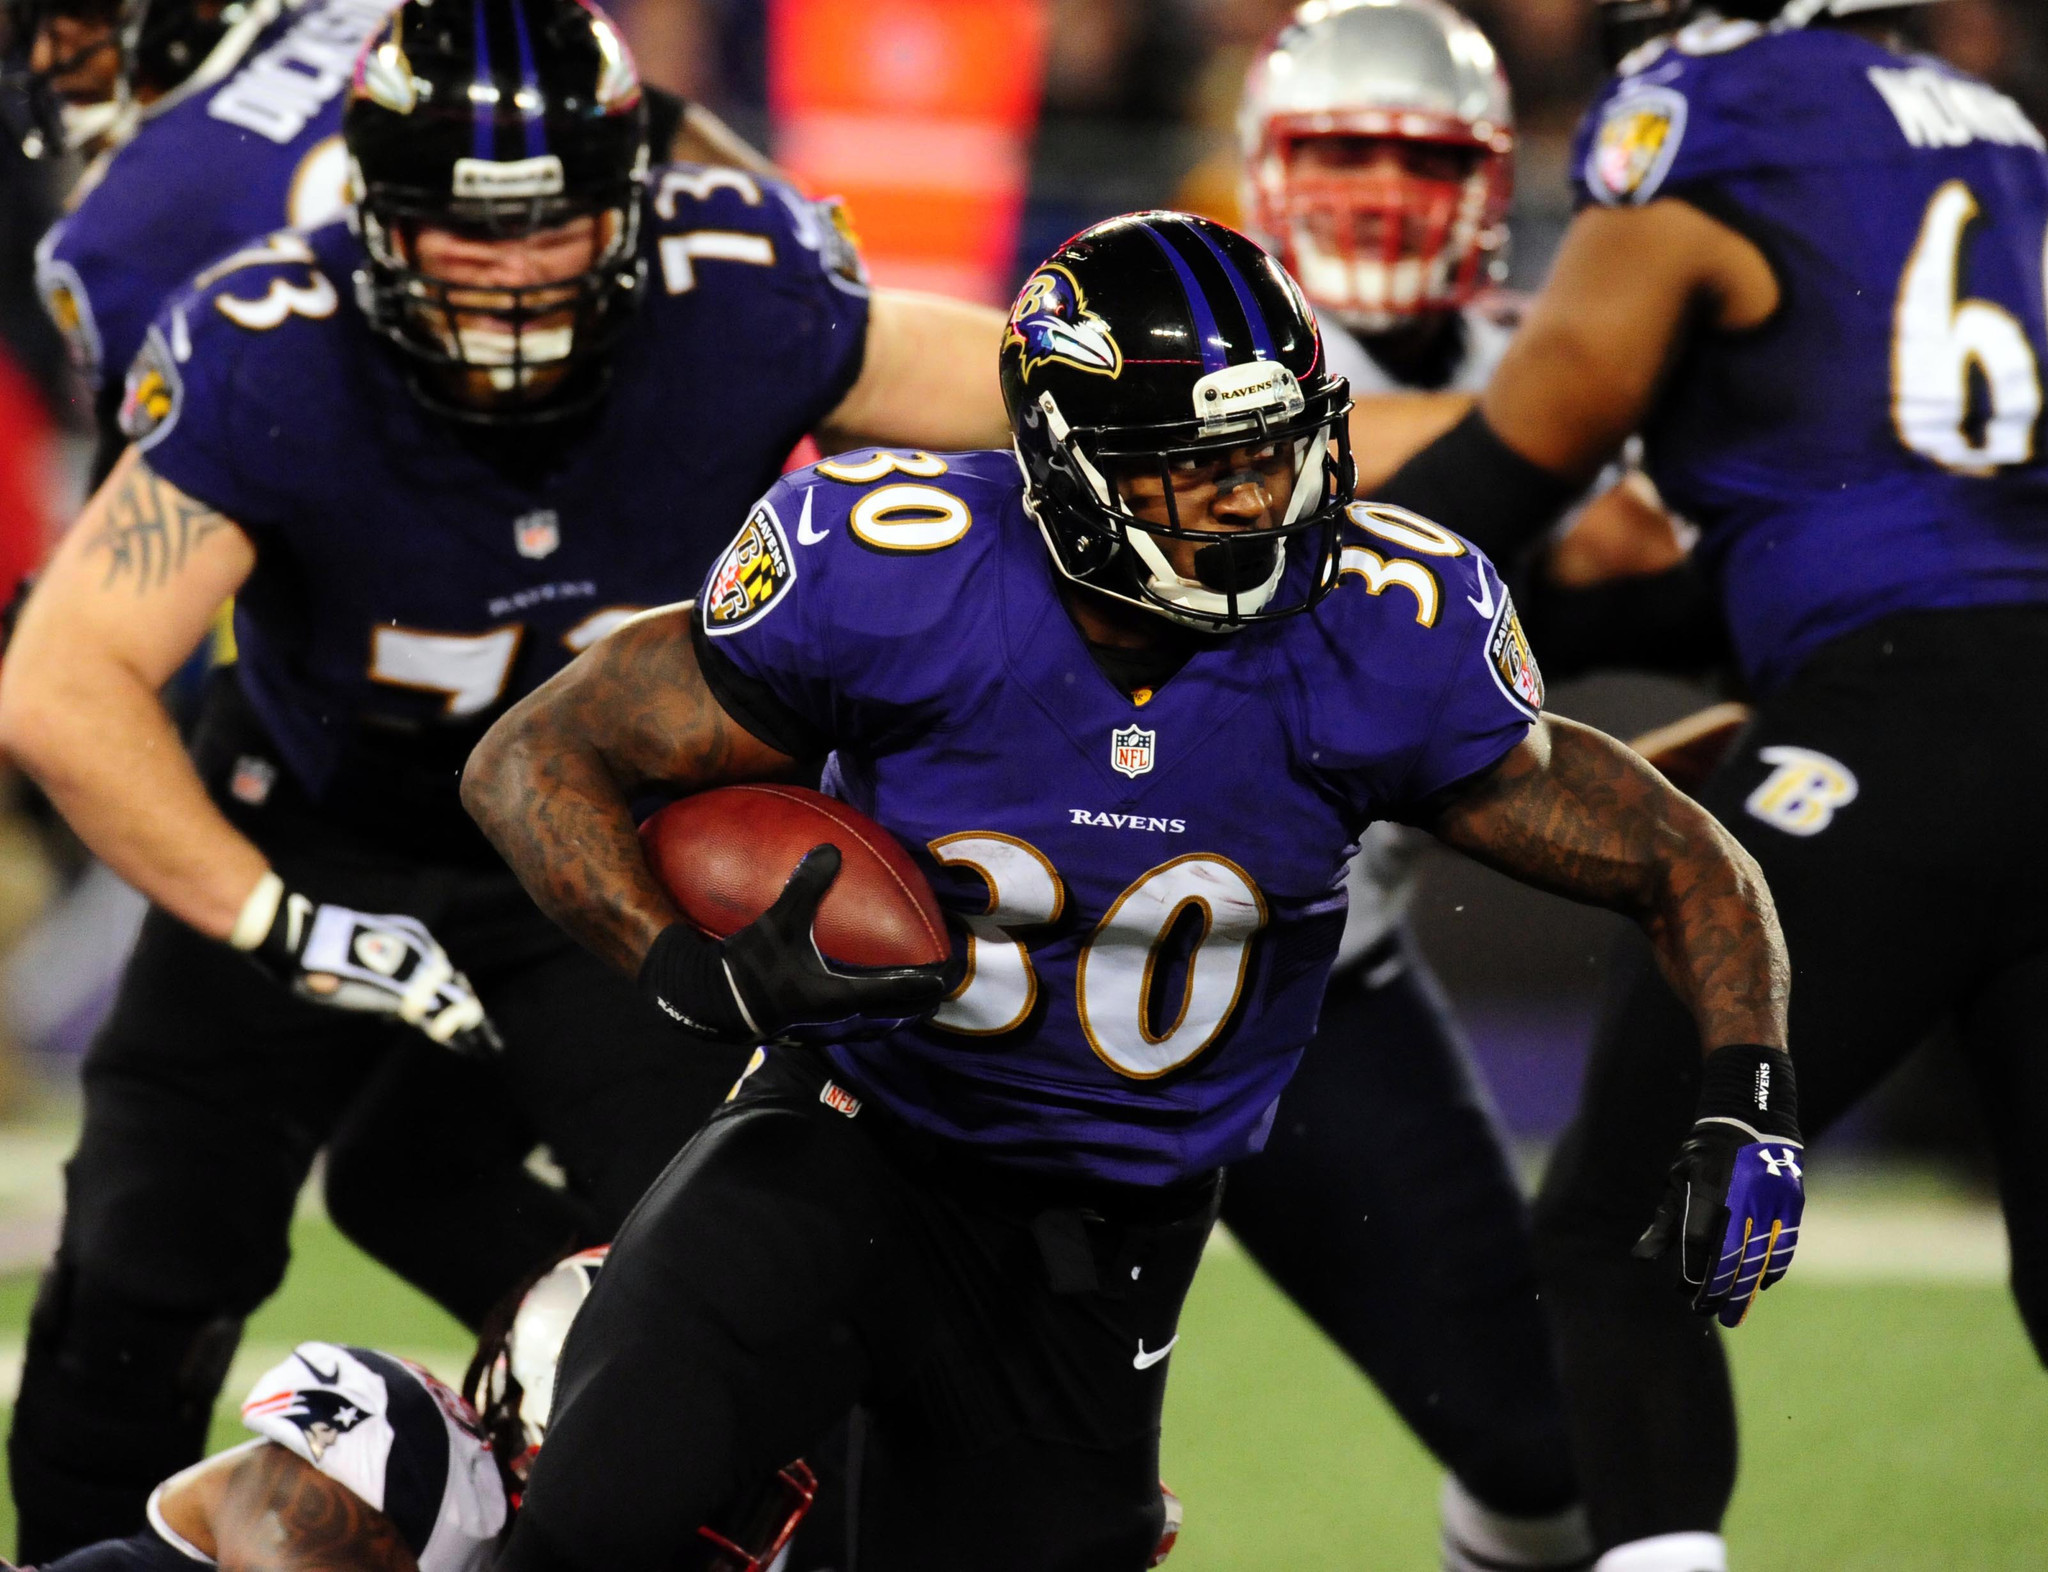 Source: Ravens running back Bernard Pierce likely to undergo sh…